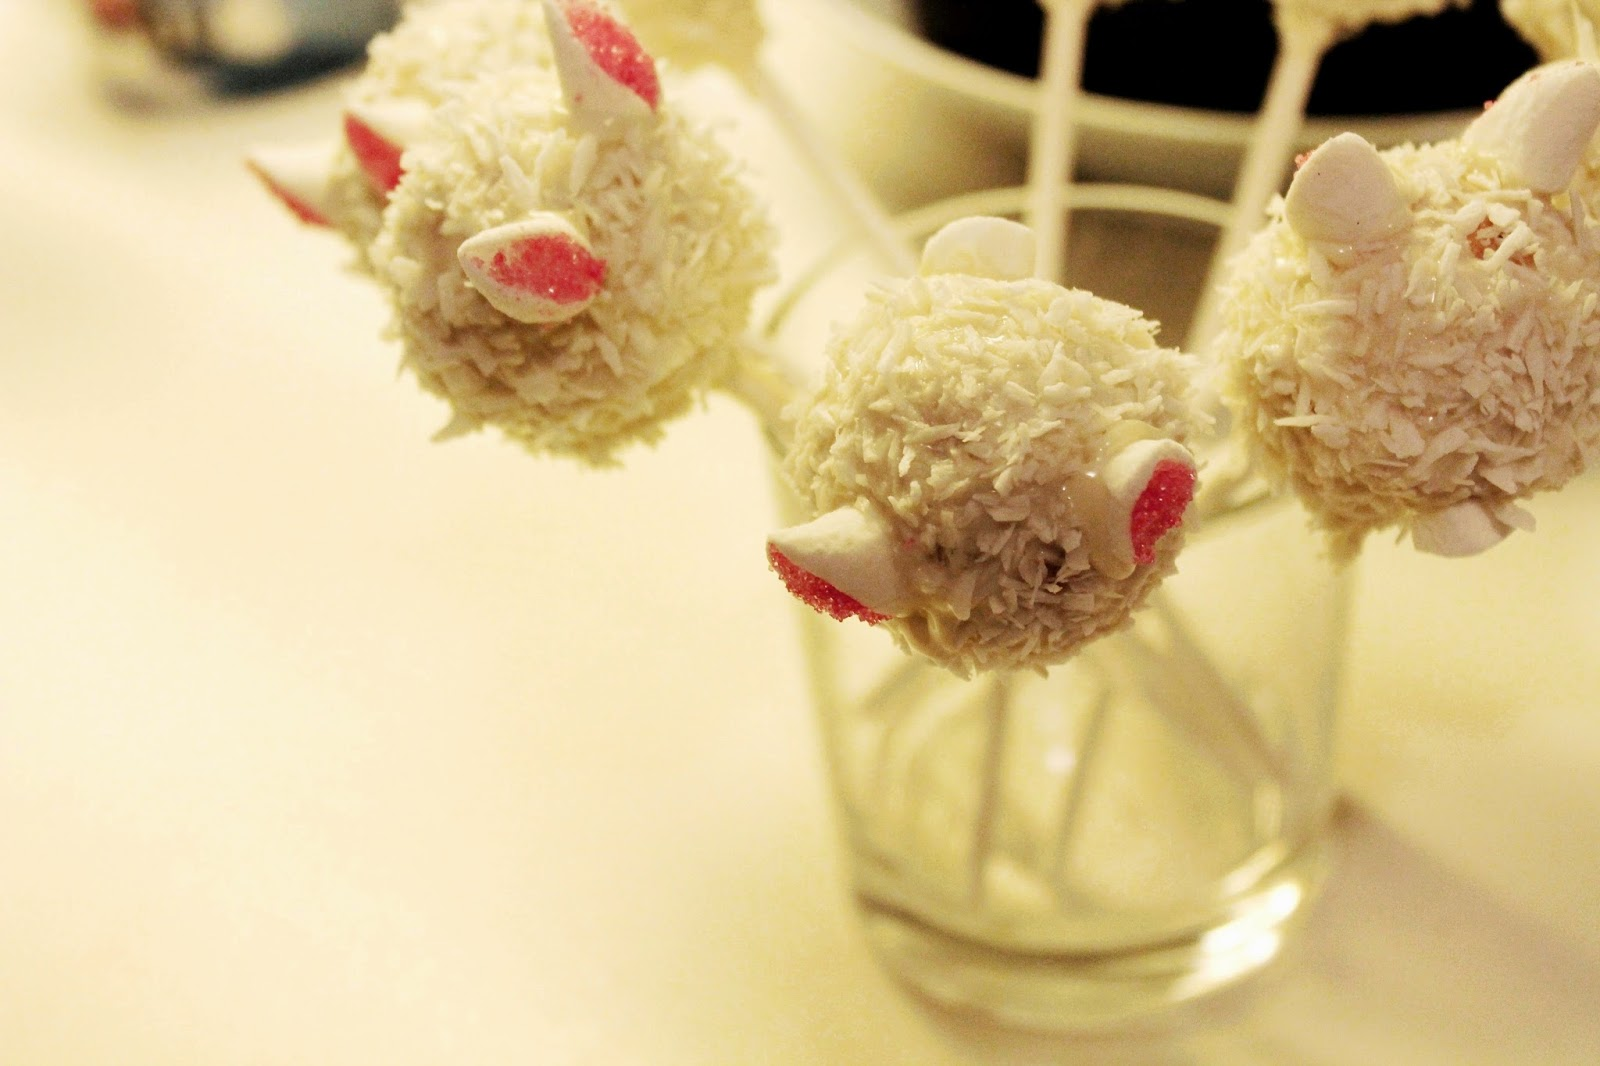 The cutest easter bunny cake-pops ever!